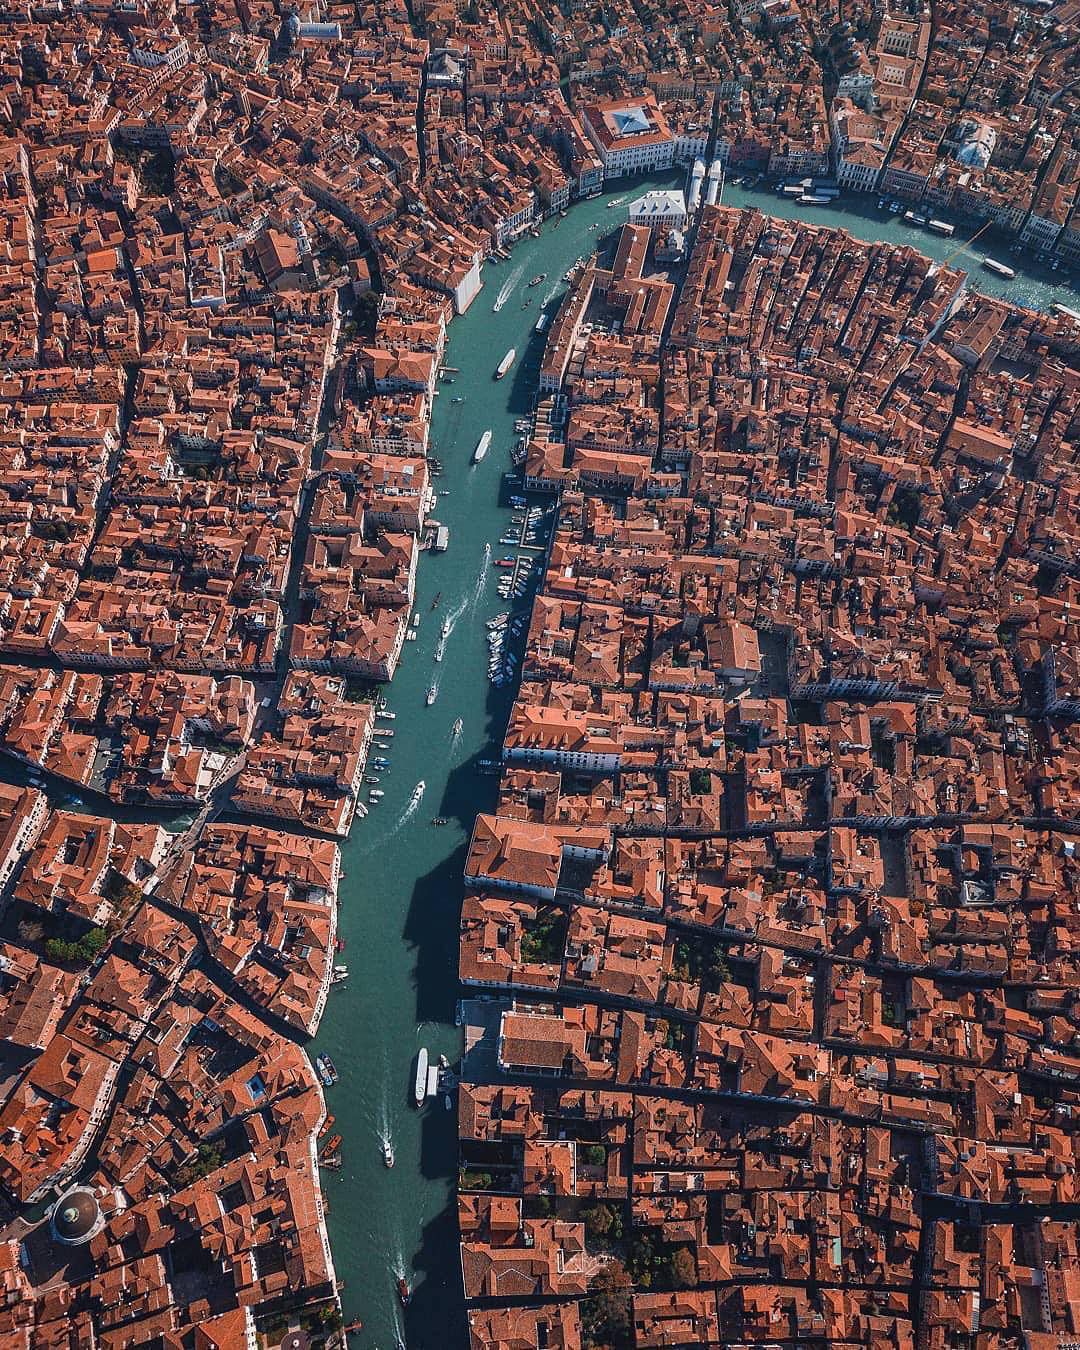 """Check out this awesome shot of the Grand Canal flowing through Venice, Italy. One of the major water-traffic corridors in the city, the Grand Canal is 2.4 miles (3.8 km) long, between 98 and 295 feet (30-90 m) wide, and has an average depth of 16 feet (5 m). Near the top of this image — where the canal bends — we can see the famous Ponte di Rialto, a 16th-century stone pedestrian bridge and major Venetian tourist attraction.  45°26'21.2""""N, 12°20'09.2""""E  Source imagery: Sebastien Nagy"""